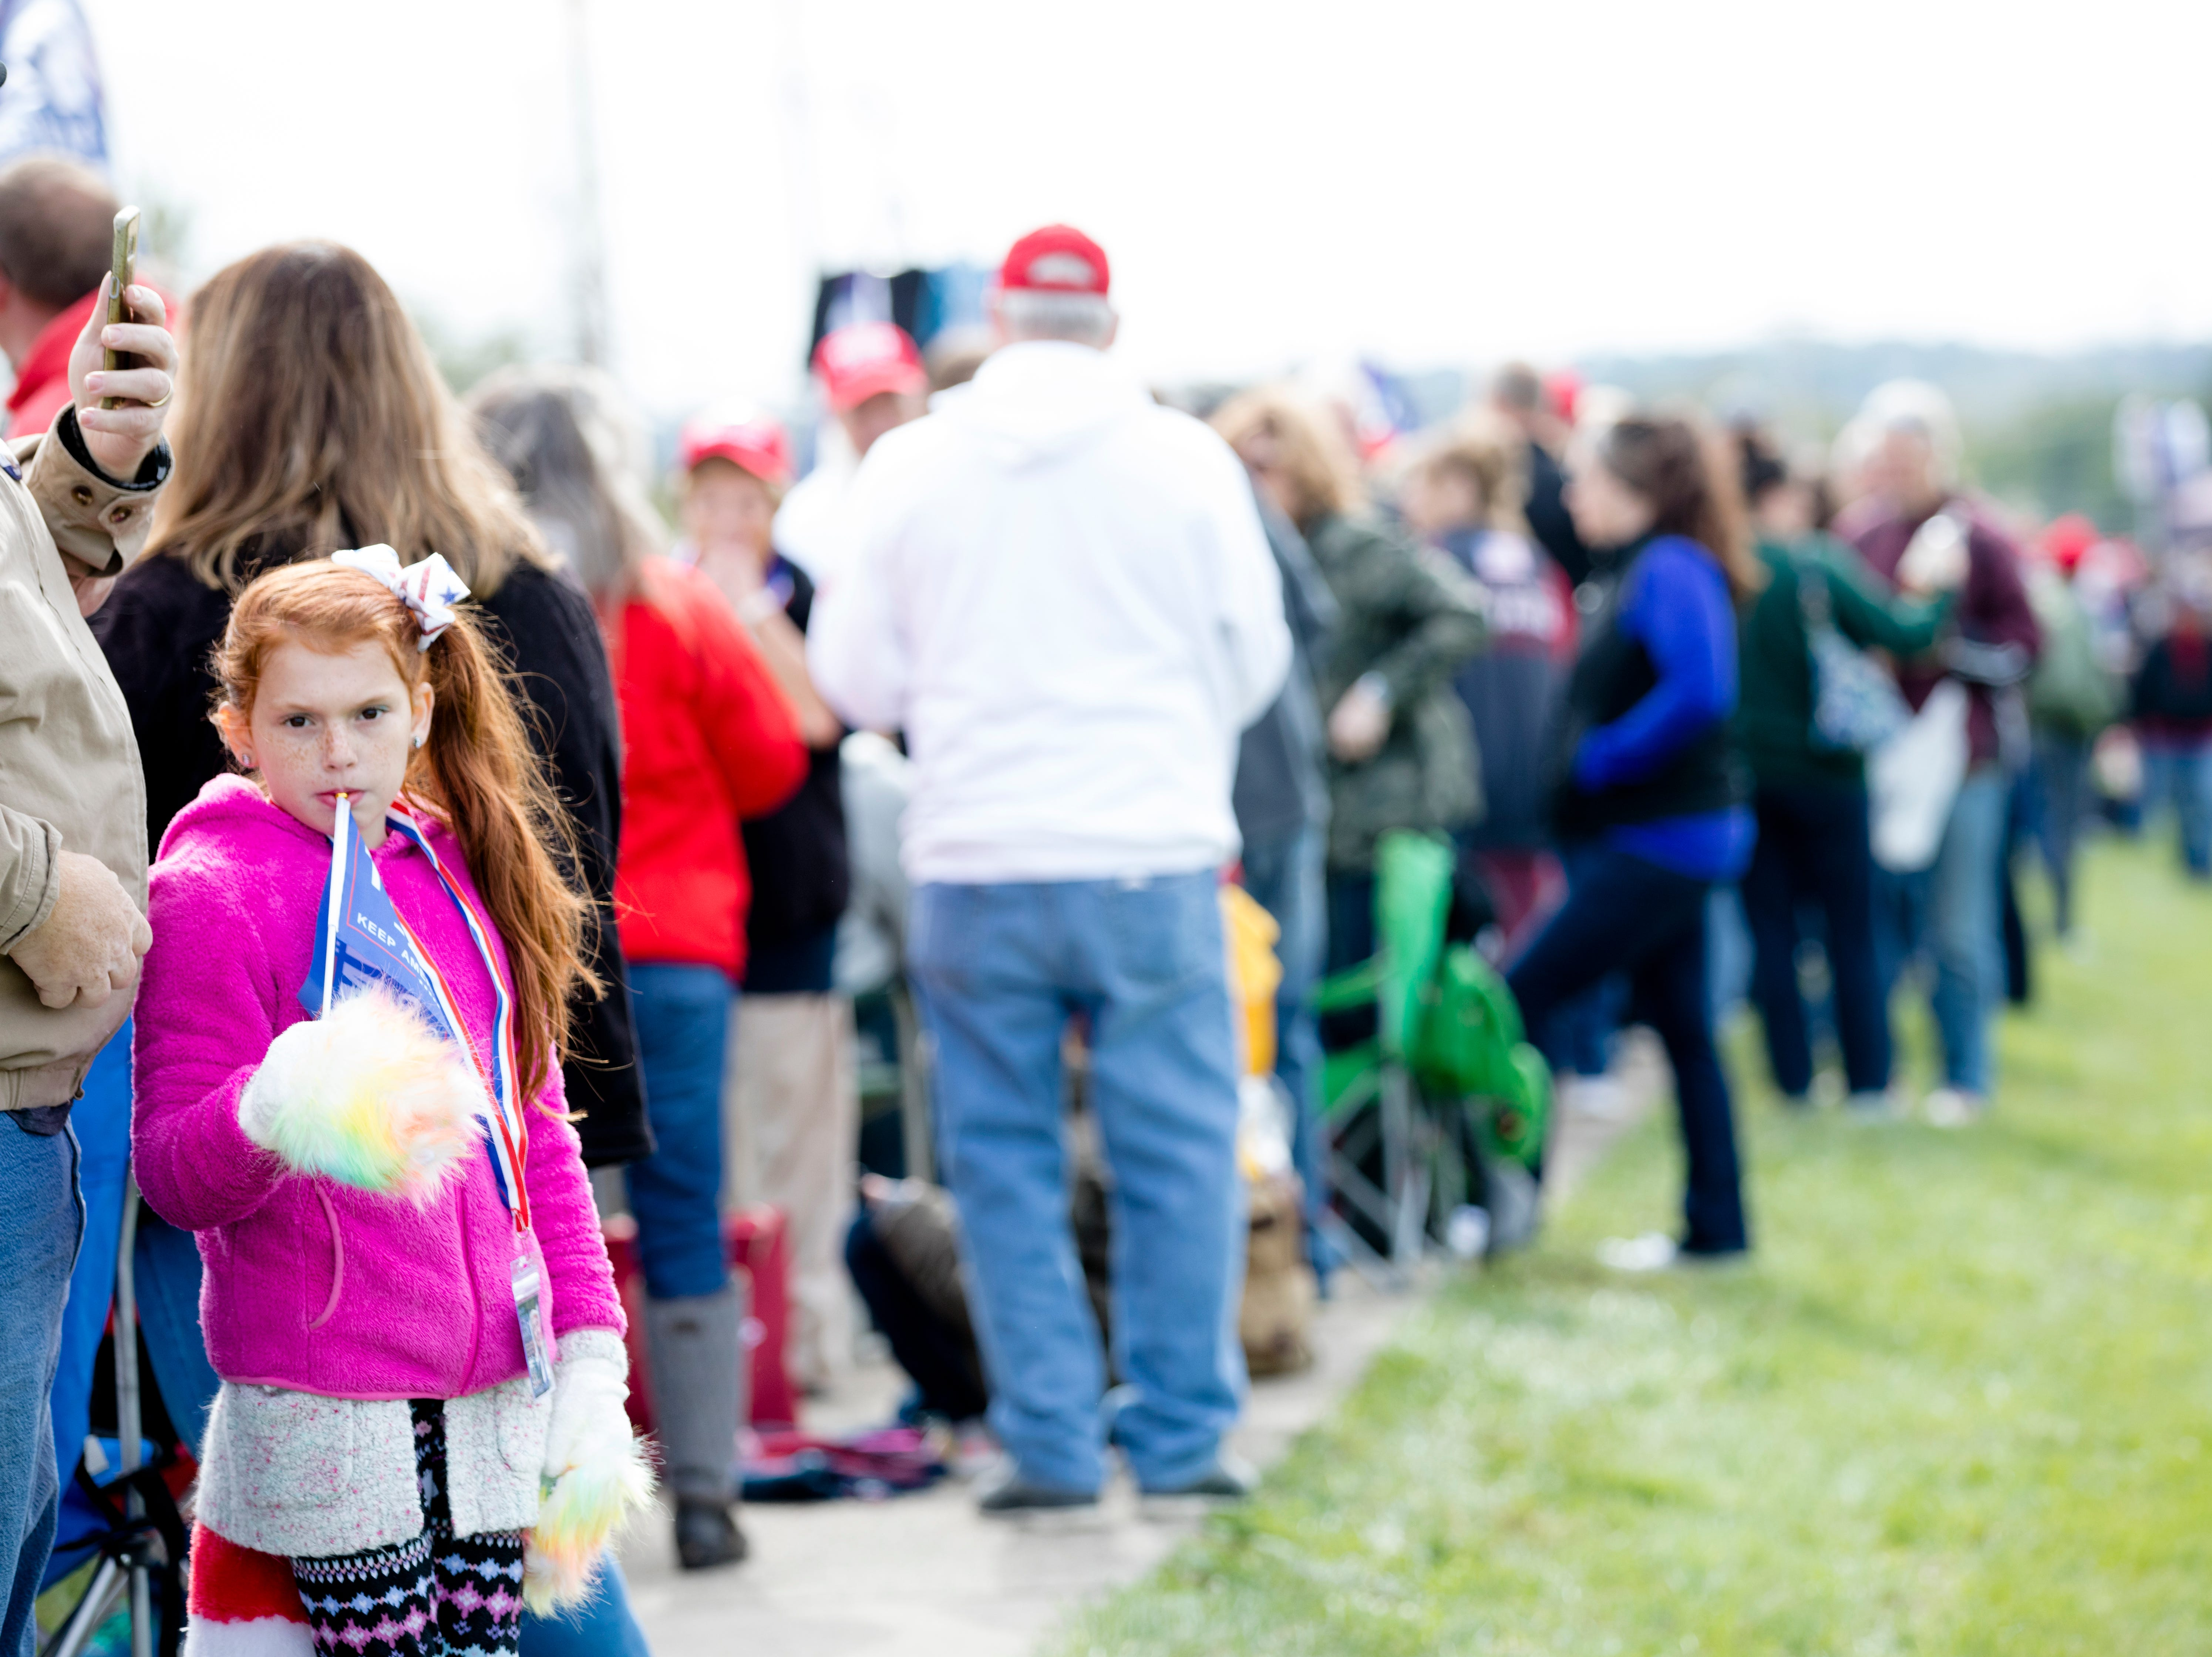 People wait in line for President Donald J. Trump's Make America Great Again Rally in Lebanon, Ohio, on Friday, Oct. 12, 2018.